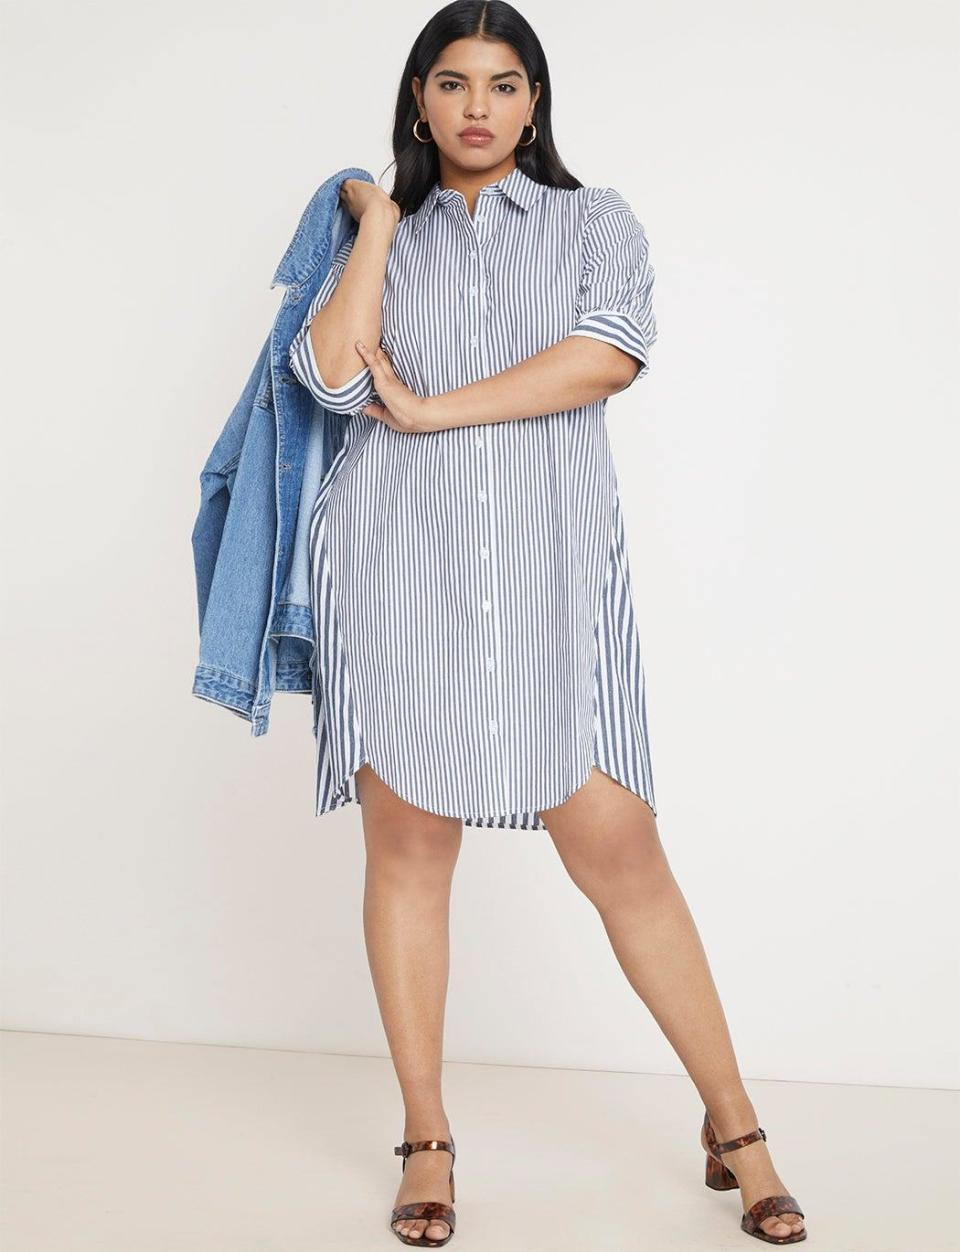 "Score 50% off on select summer clothes at <a href=""https://www.eloquii.com/"" rel=""nofollow noopener"" target=""_blank"" data-ylk=""slk:Eloquii"" class=""link rapid-noclick-resp"">Eloquii</a> using the checkout code SALETIME. <br> <br> <strong>Eloquii</strong> Contrast Stripe High-Low Dress, $, available at <a href=""https://go.skimresources.com/?id=30283X879131&url=https%3A%2F%2Fwww.eloquii.com%2Fcontrast-stripe-high-low-dress%2F1248113.html%3Fdwvar_1248113_colorCode%3D9"" rel=""nofollow noopener"" target=""_blank"" data-ylk=""slk:Eloquii"" class=""link rapid-noclick-resp"">Eloquii</a>"